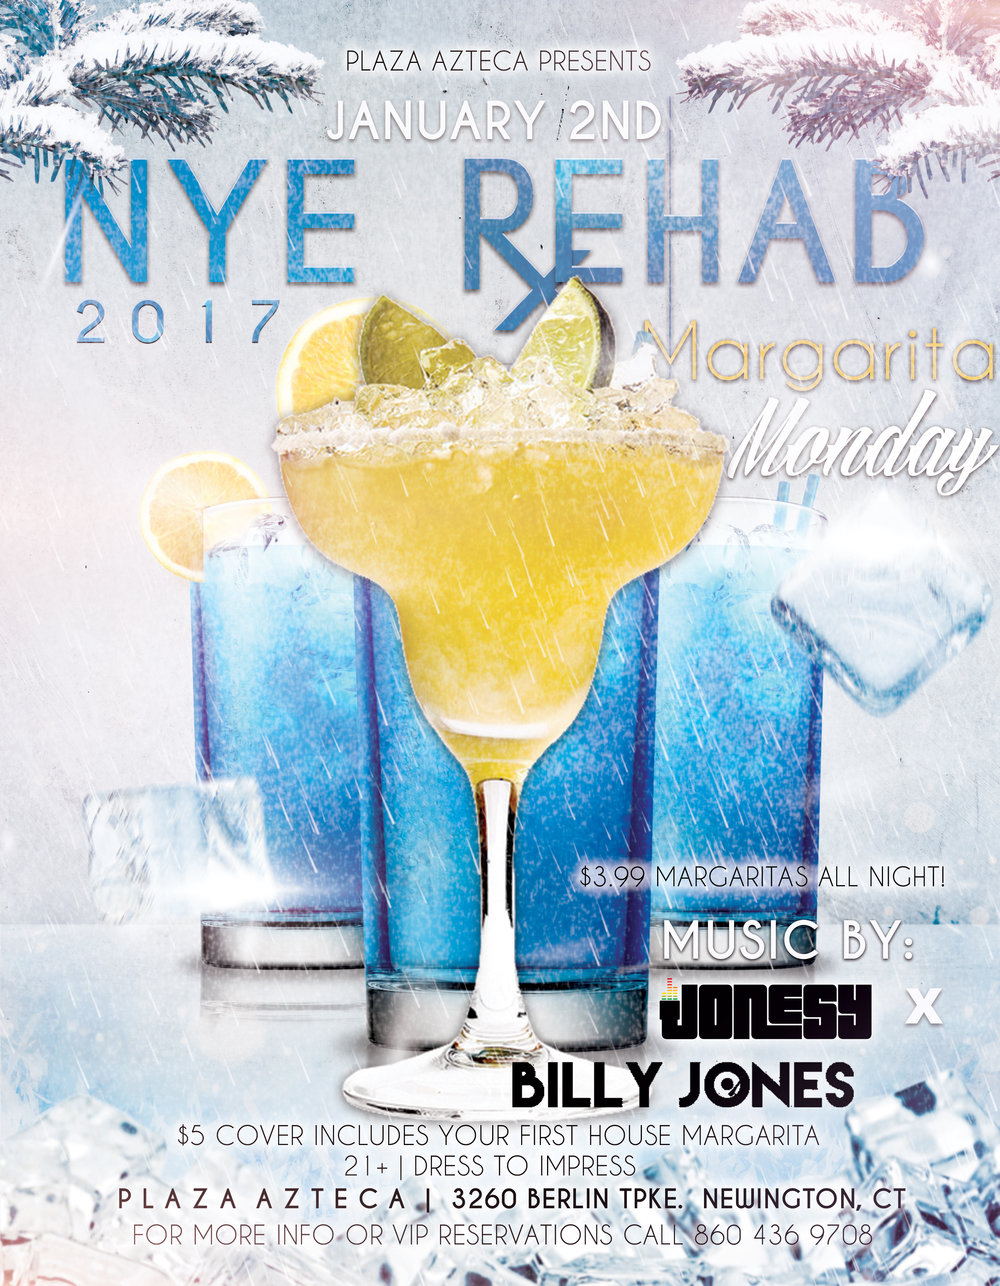 Monday, January 2nd, 2017 join me at Plaza Azteca in Newington, CT for Margarita Monday with music by Billy Jones & yours truly 9pm-close.  $3.99 Margaritas all night long!  We will all be recovering from the NYE festivities as we may as well do it together!  Meet us there! $5 Cover.